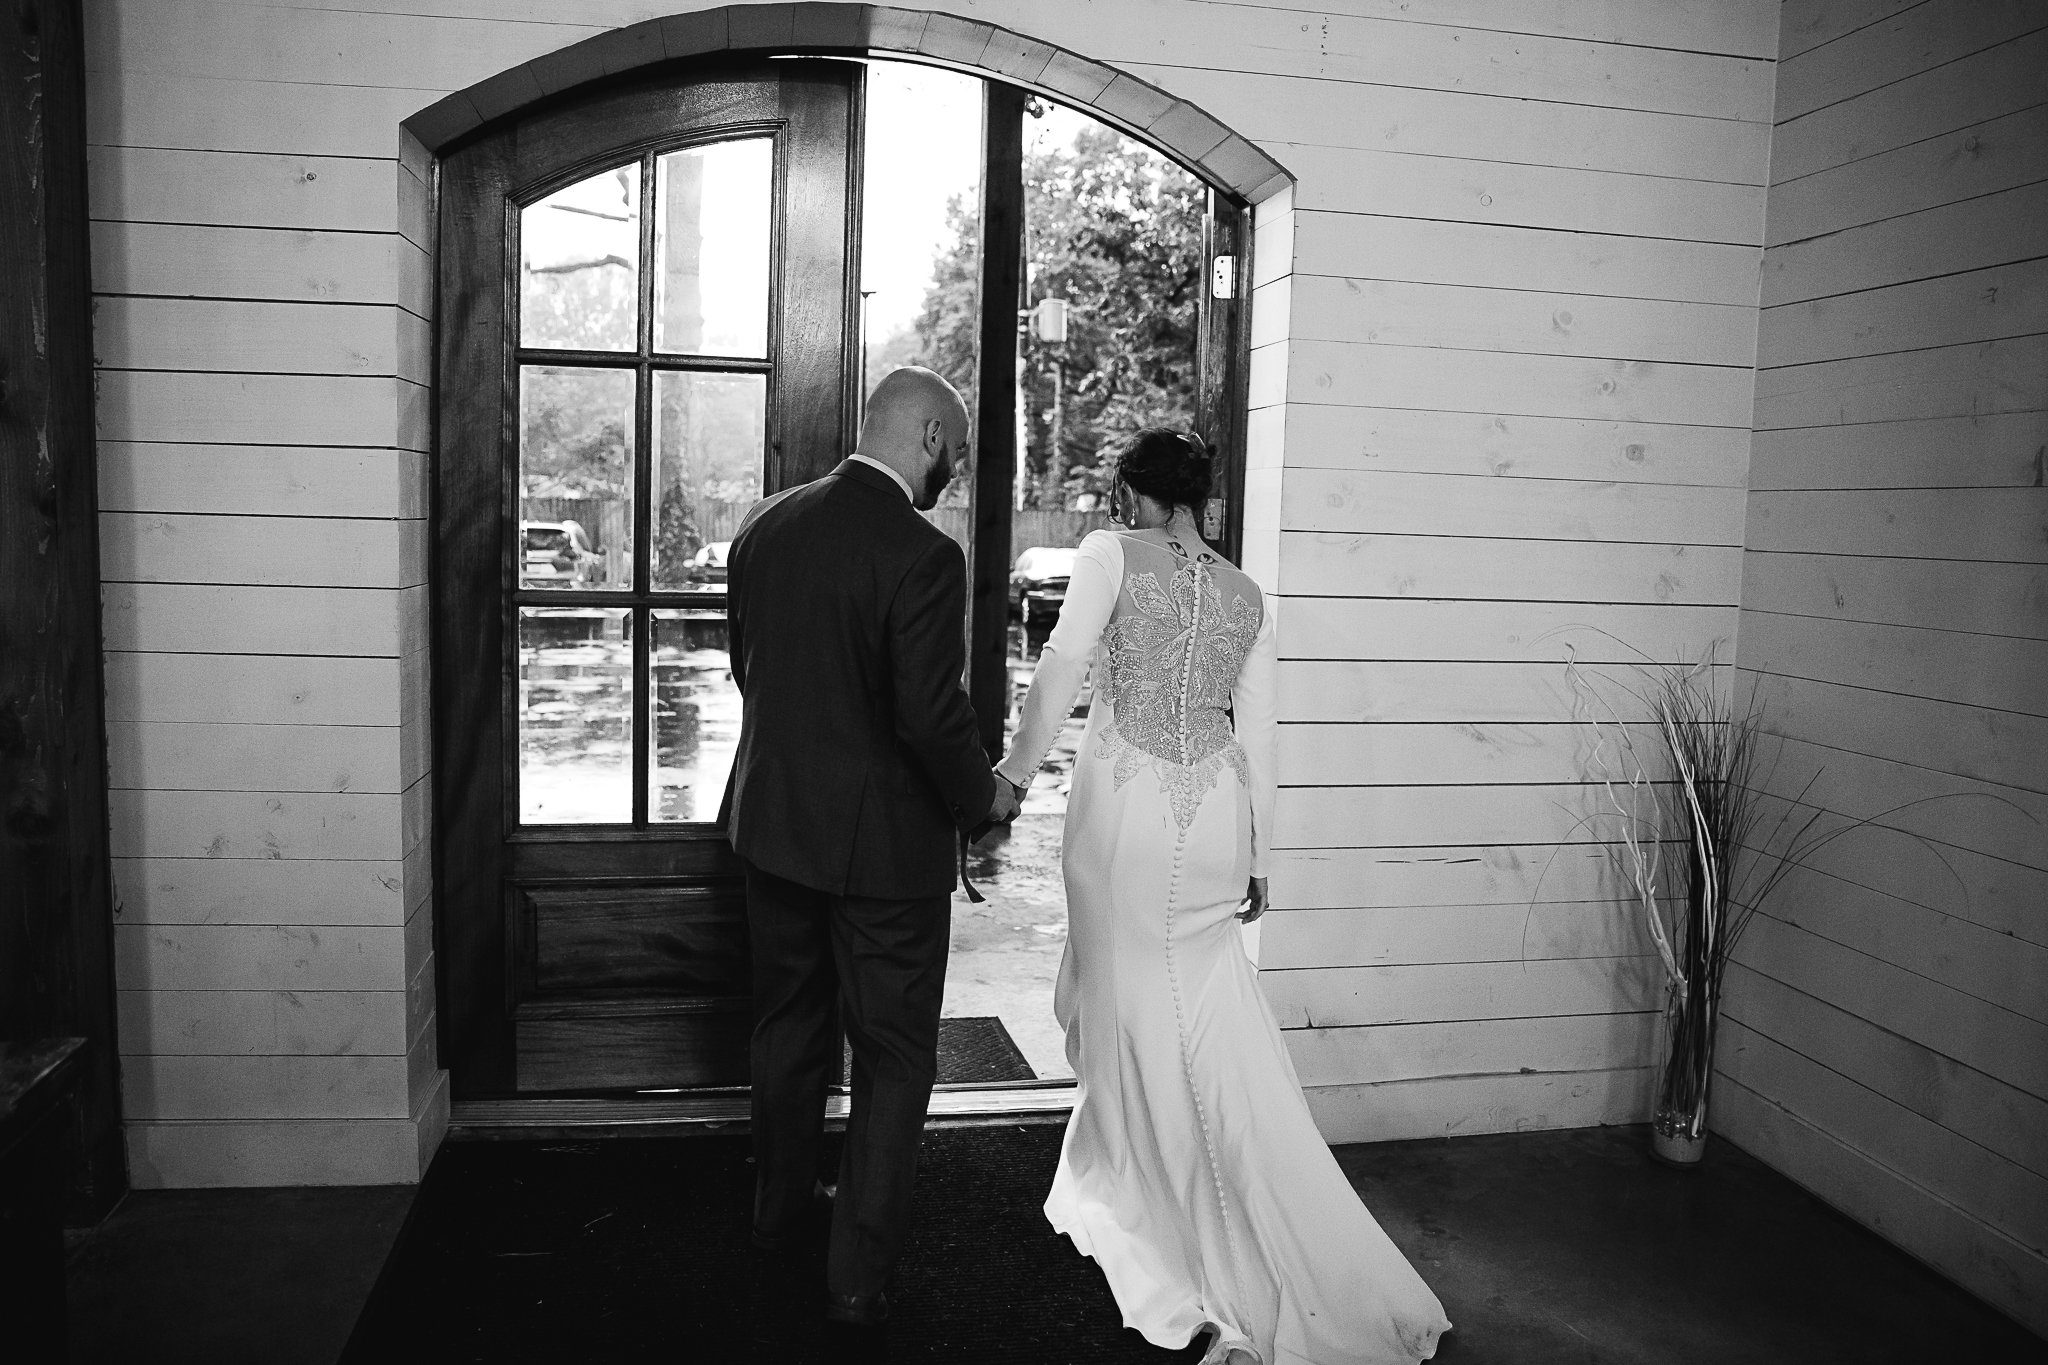 Caitlin-and-Bryan-Avon-Acres-Memphis-TN-Wedding-180.jpg